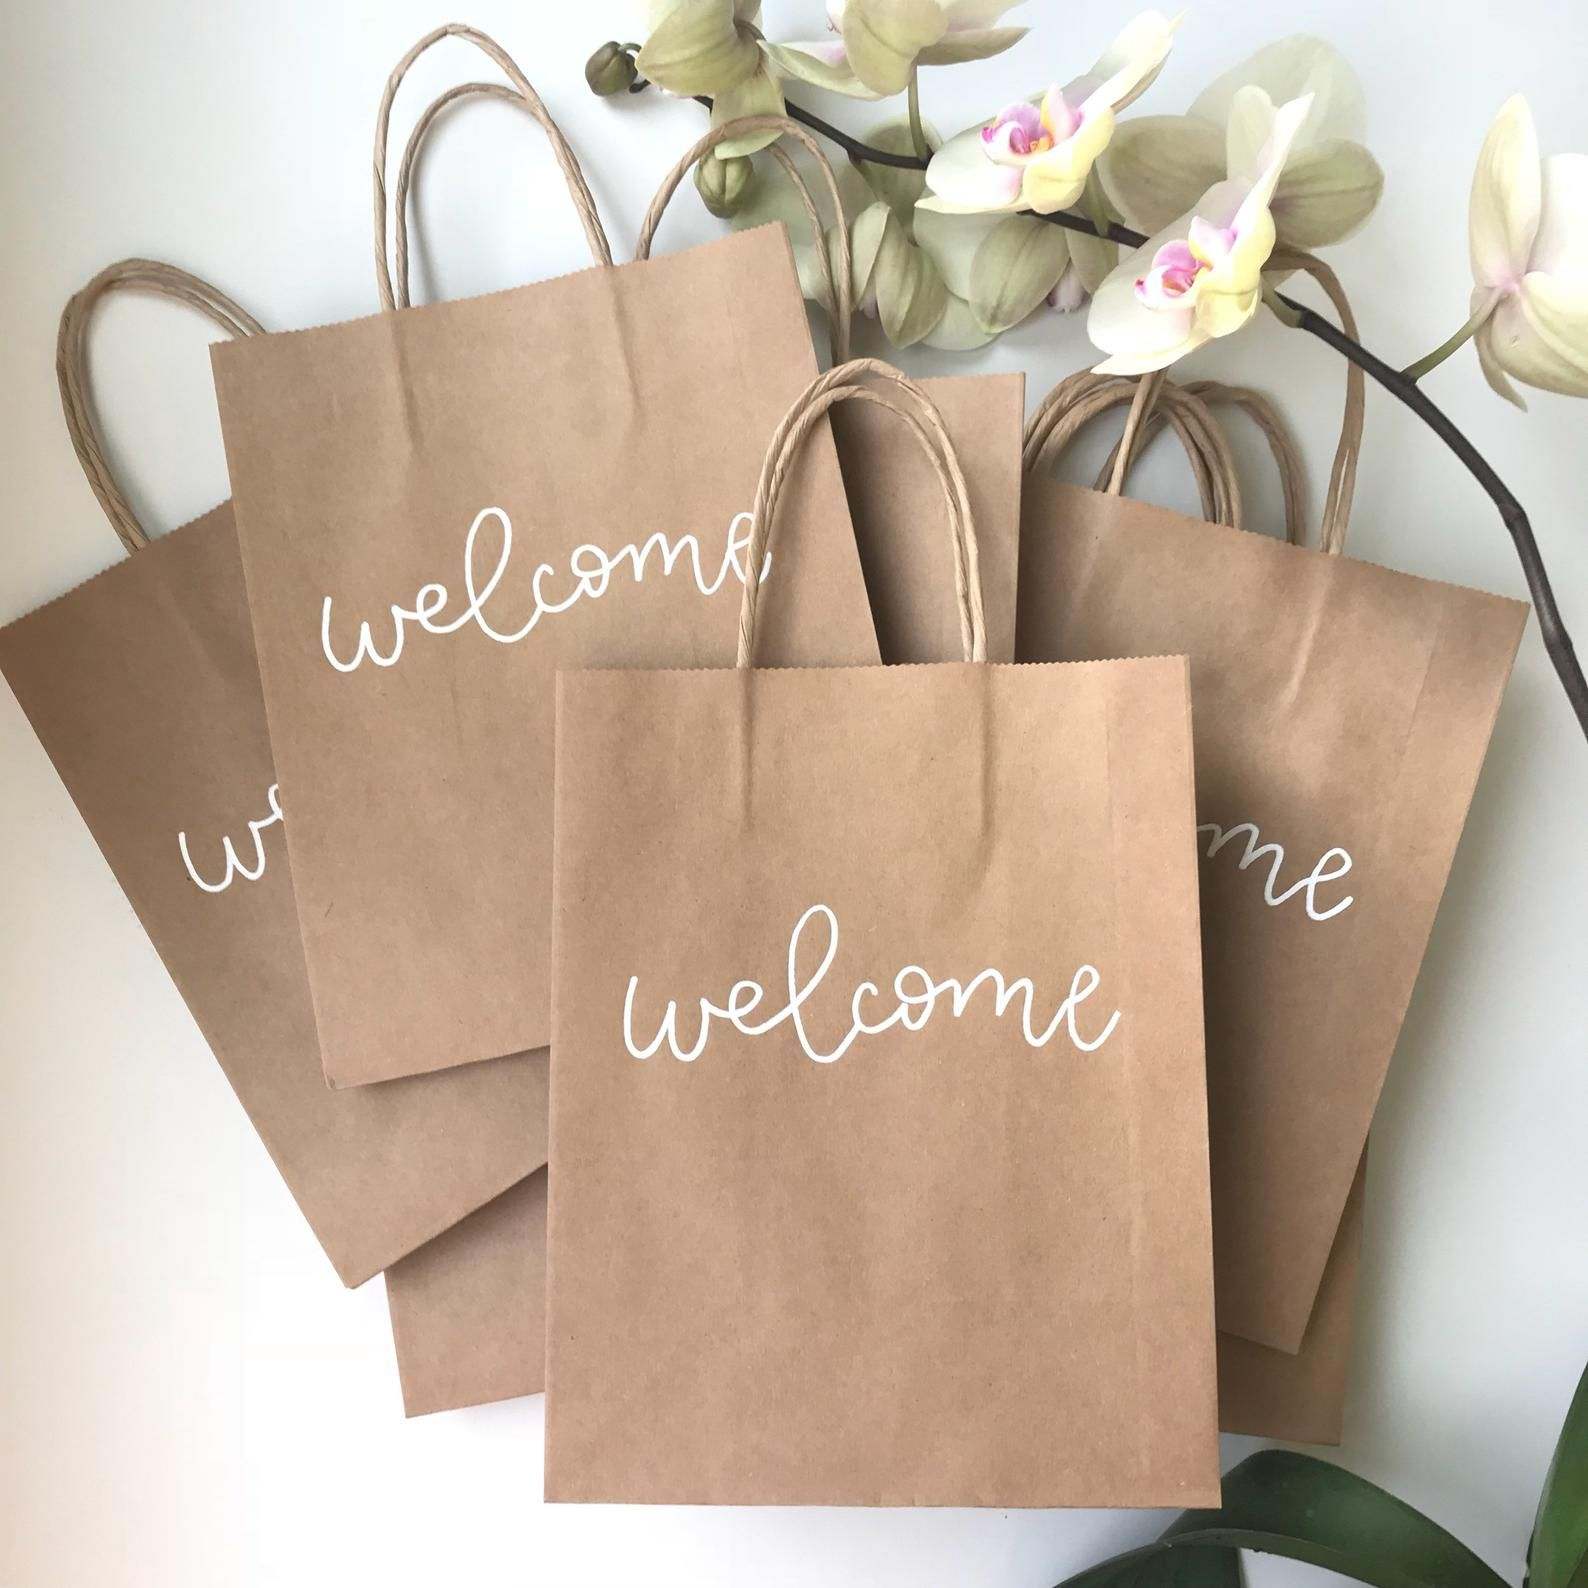 How to use Wedding Favor Bags to inspire Invited Guests